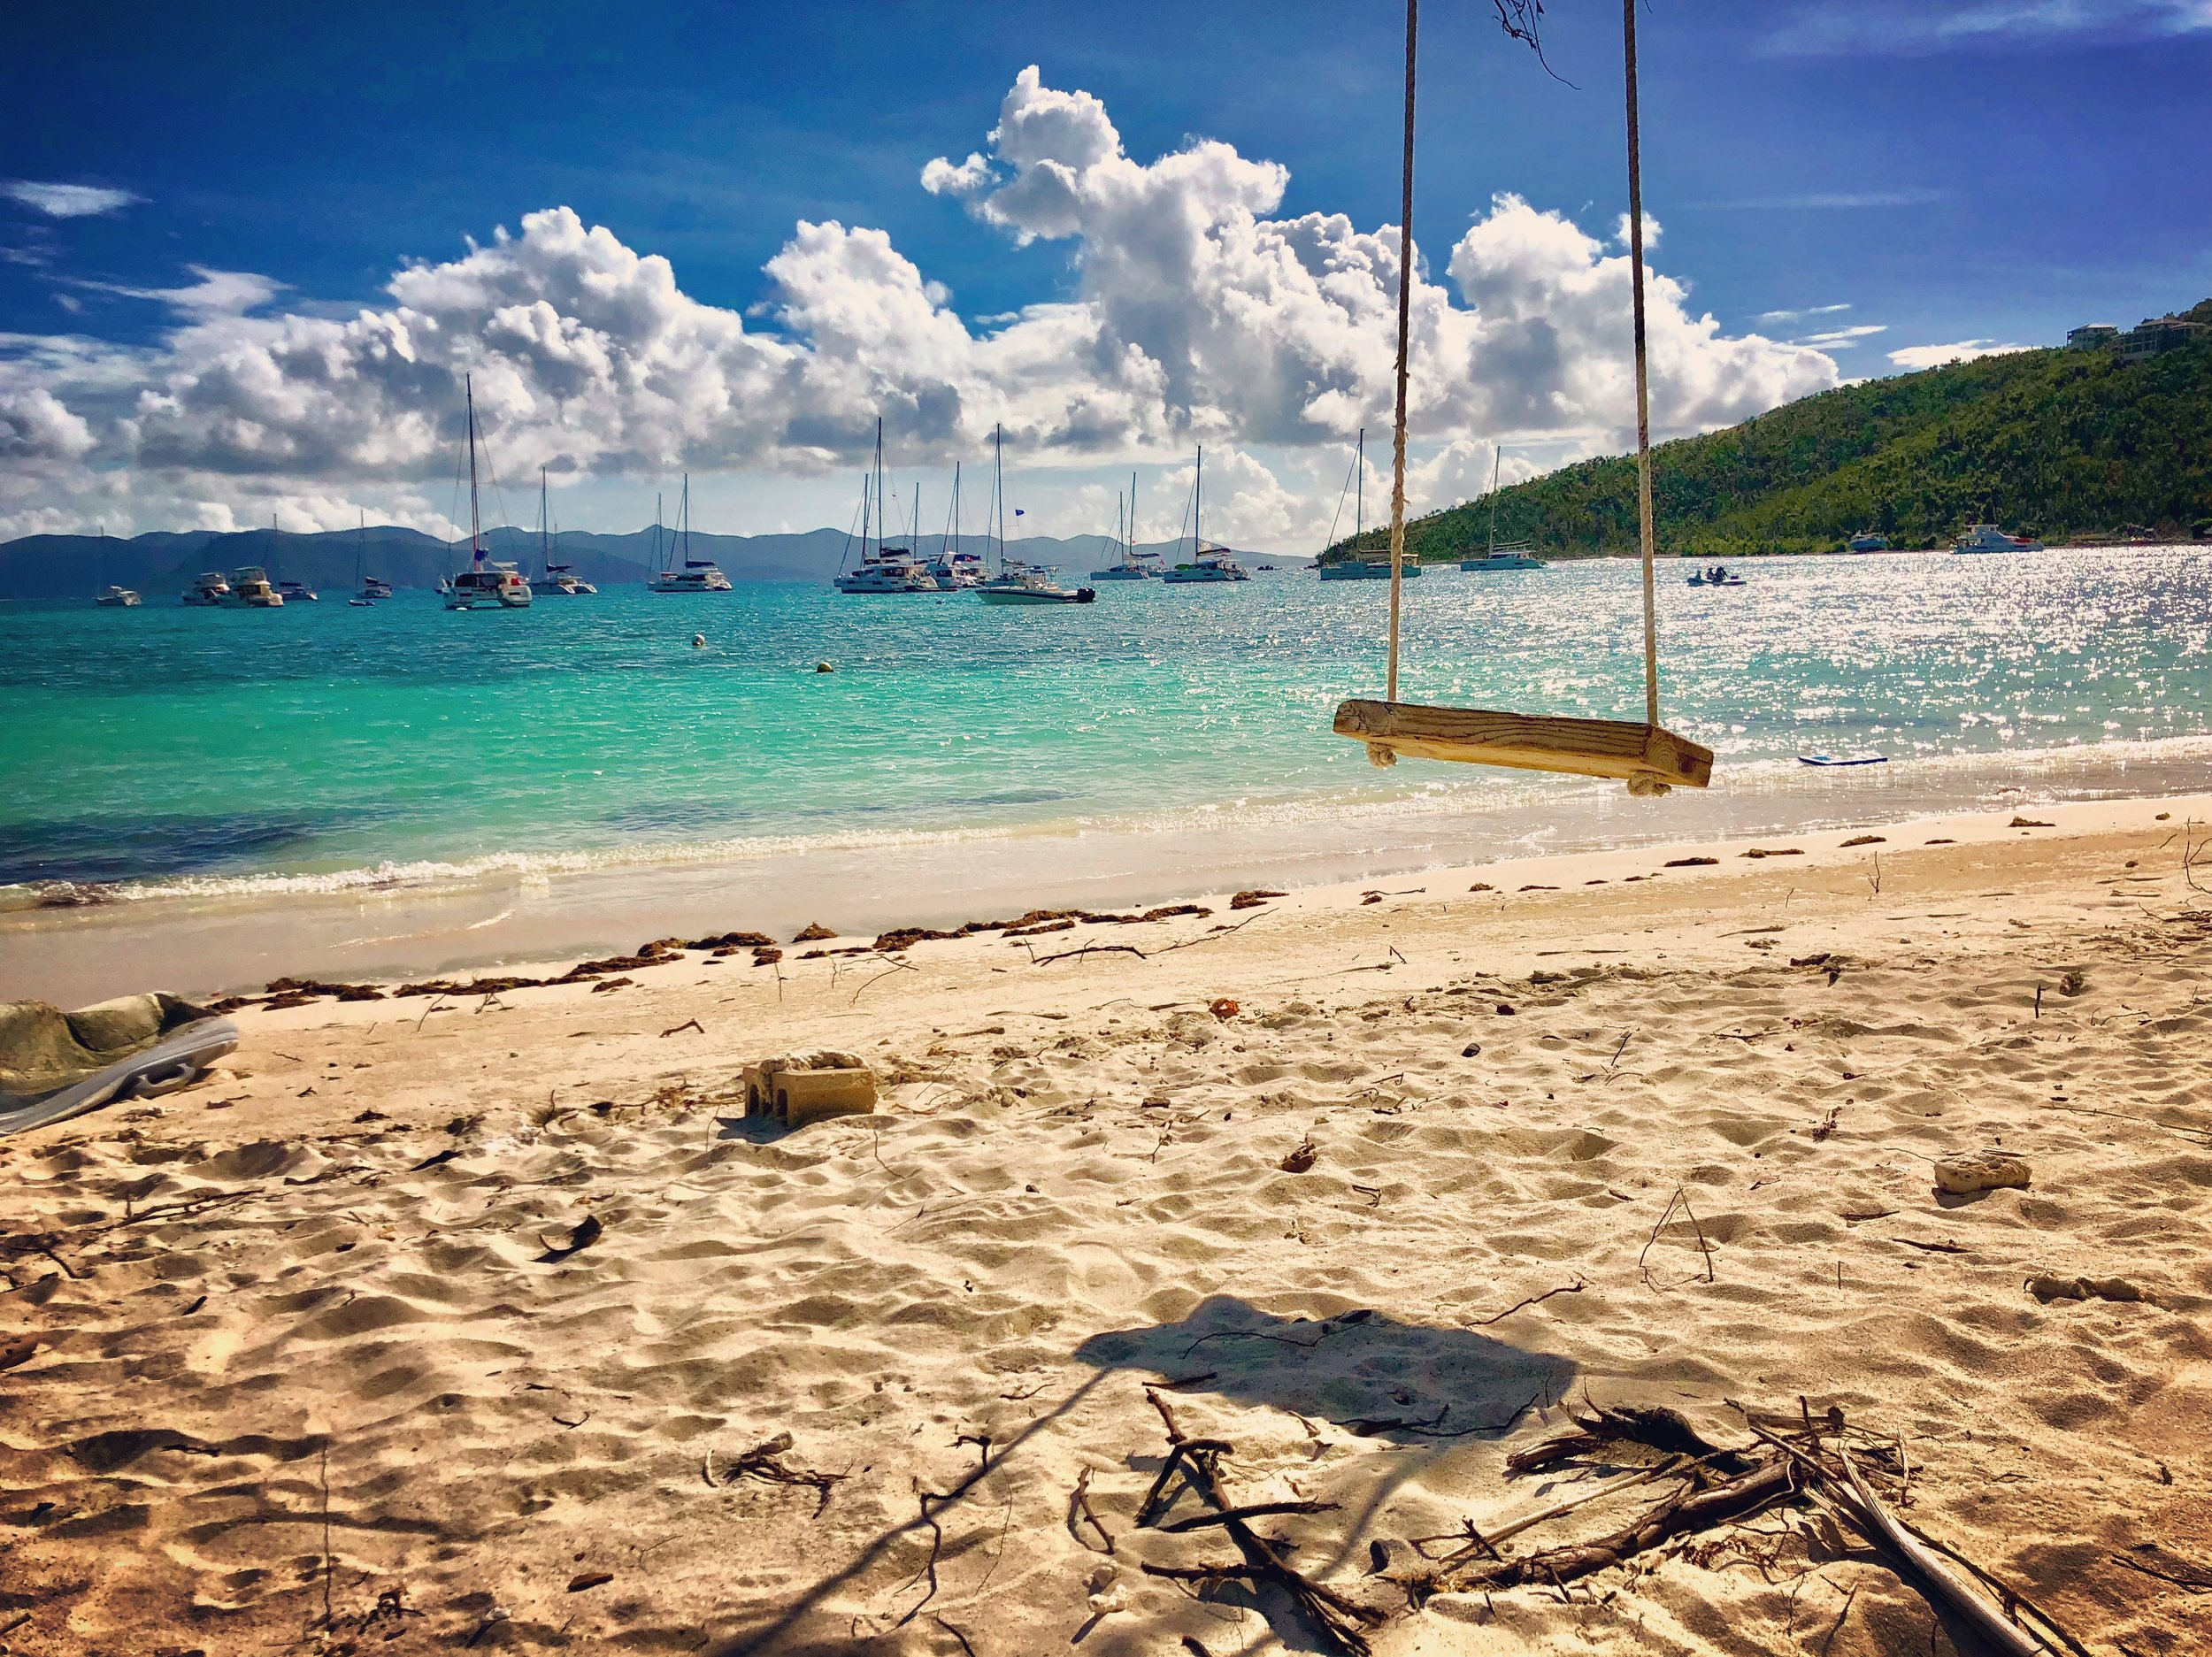 Looking out at Great Harbor, Jost Van Dyke